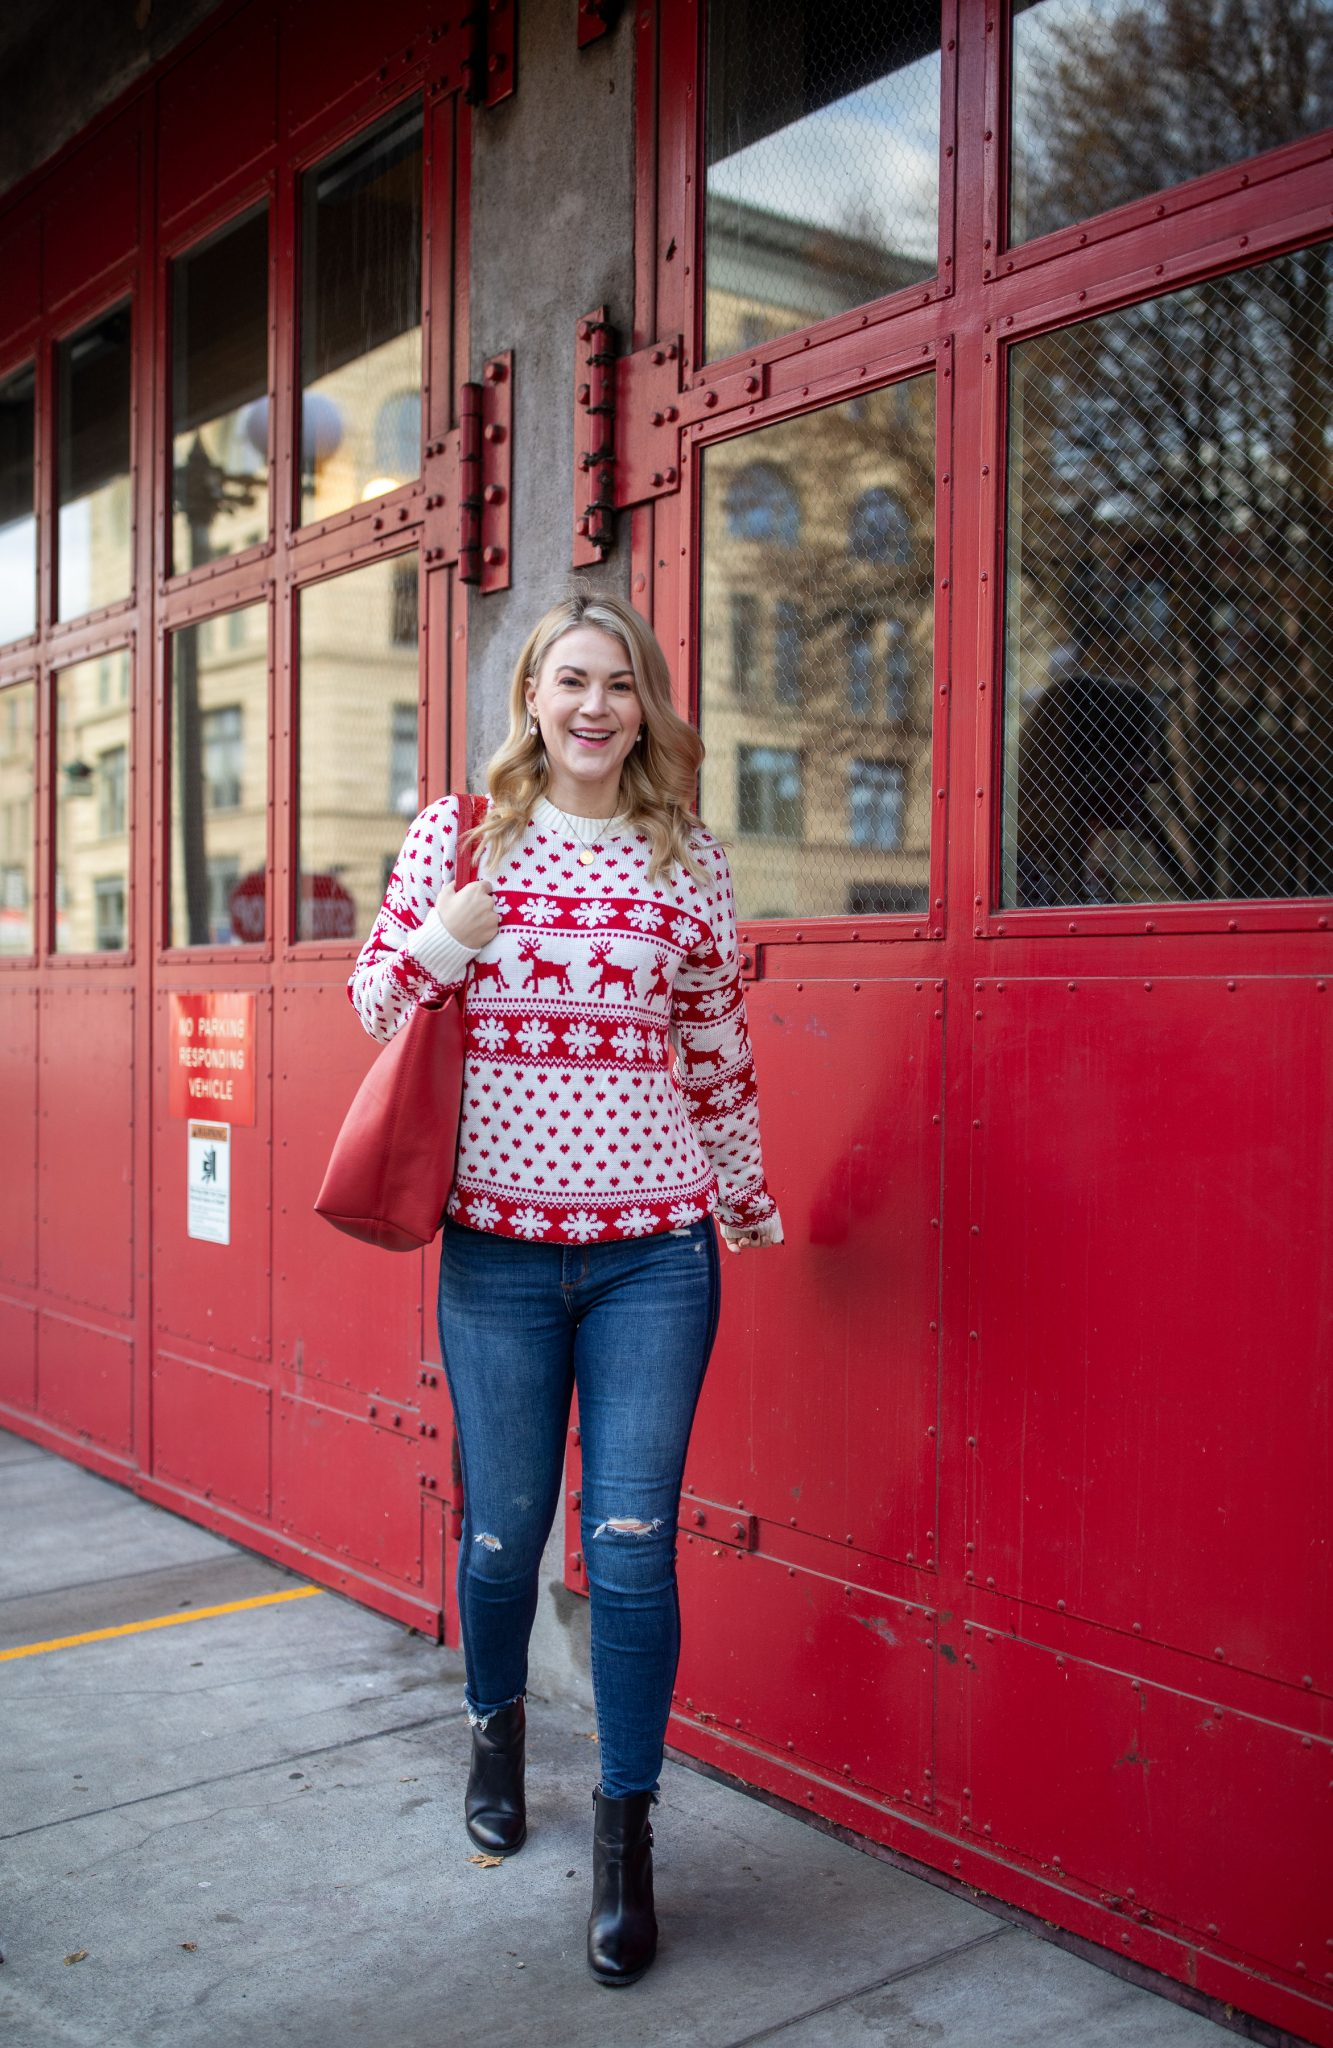 Red Puffer Jacket by popular Seattle tall fashion blog, Whit Wanders: image of a woman standing in front of a red metal door and wearing a red and white holiday sweater, jeans and black ankle boots.